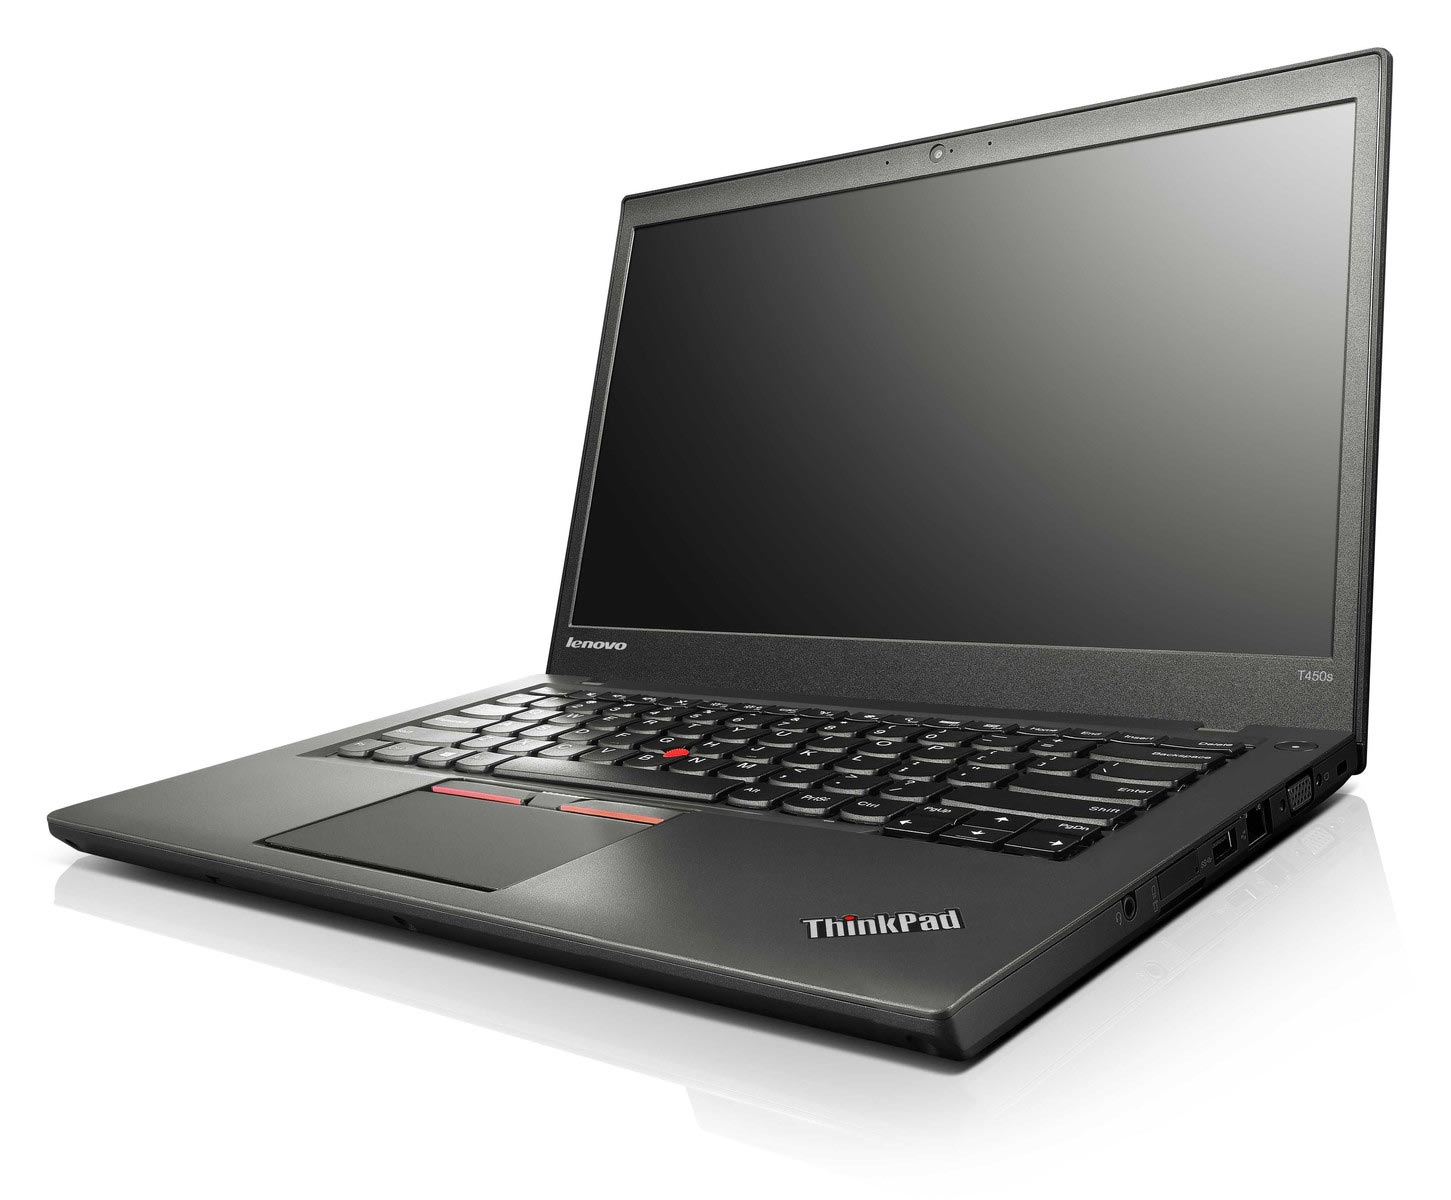 Lenovo thinkpad t450s Windows 10